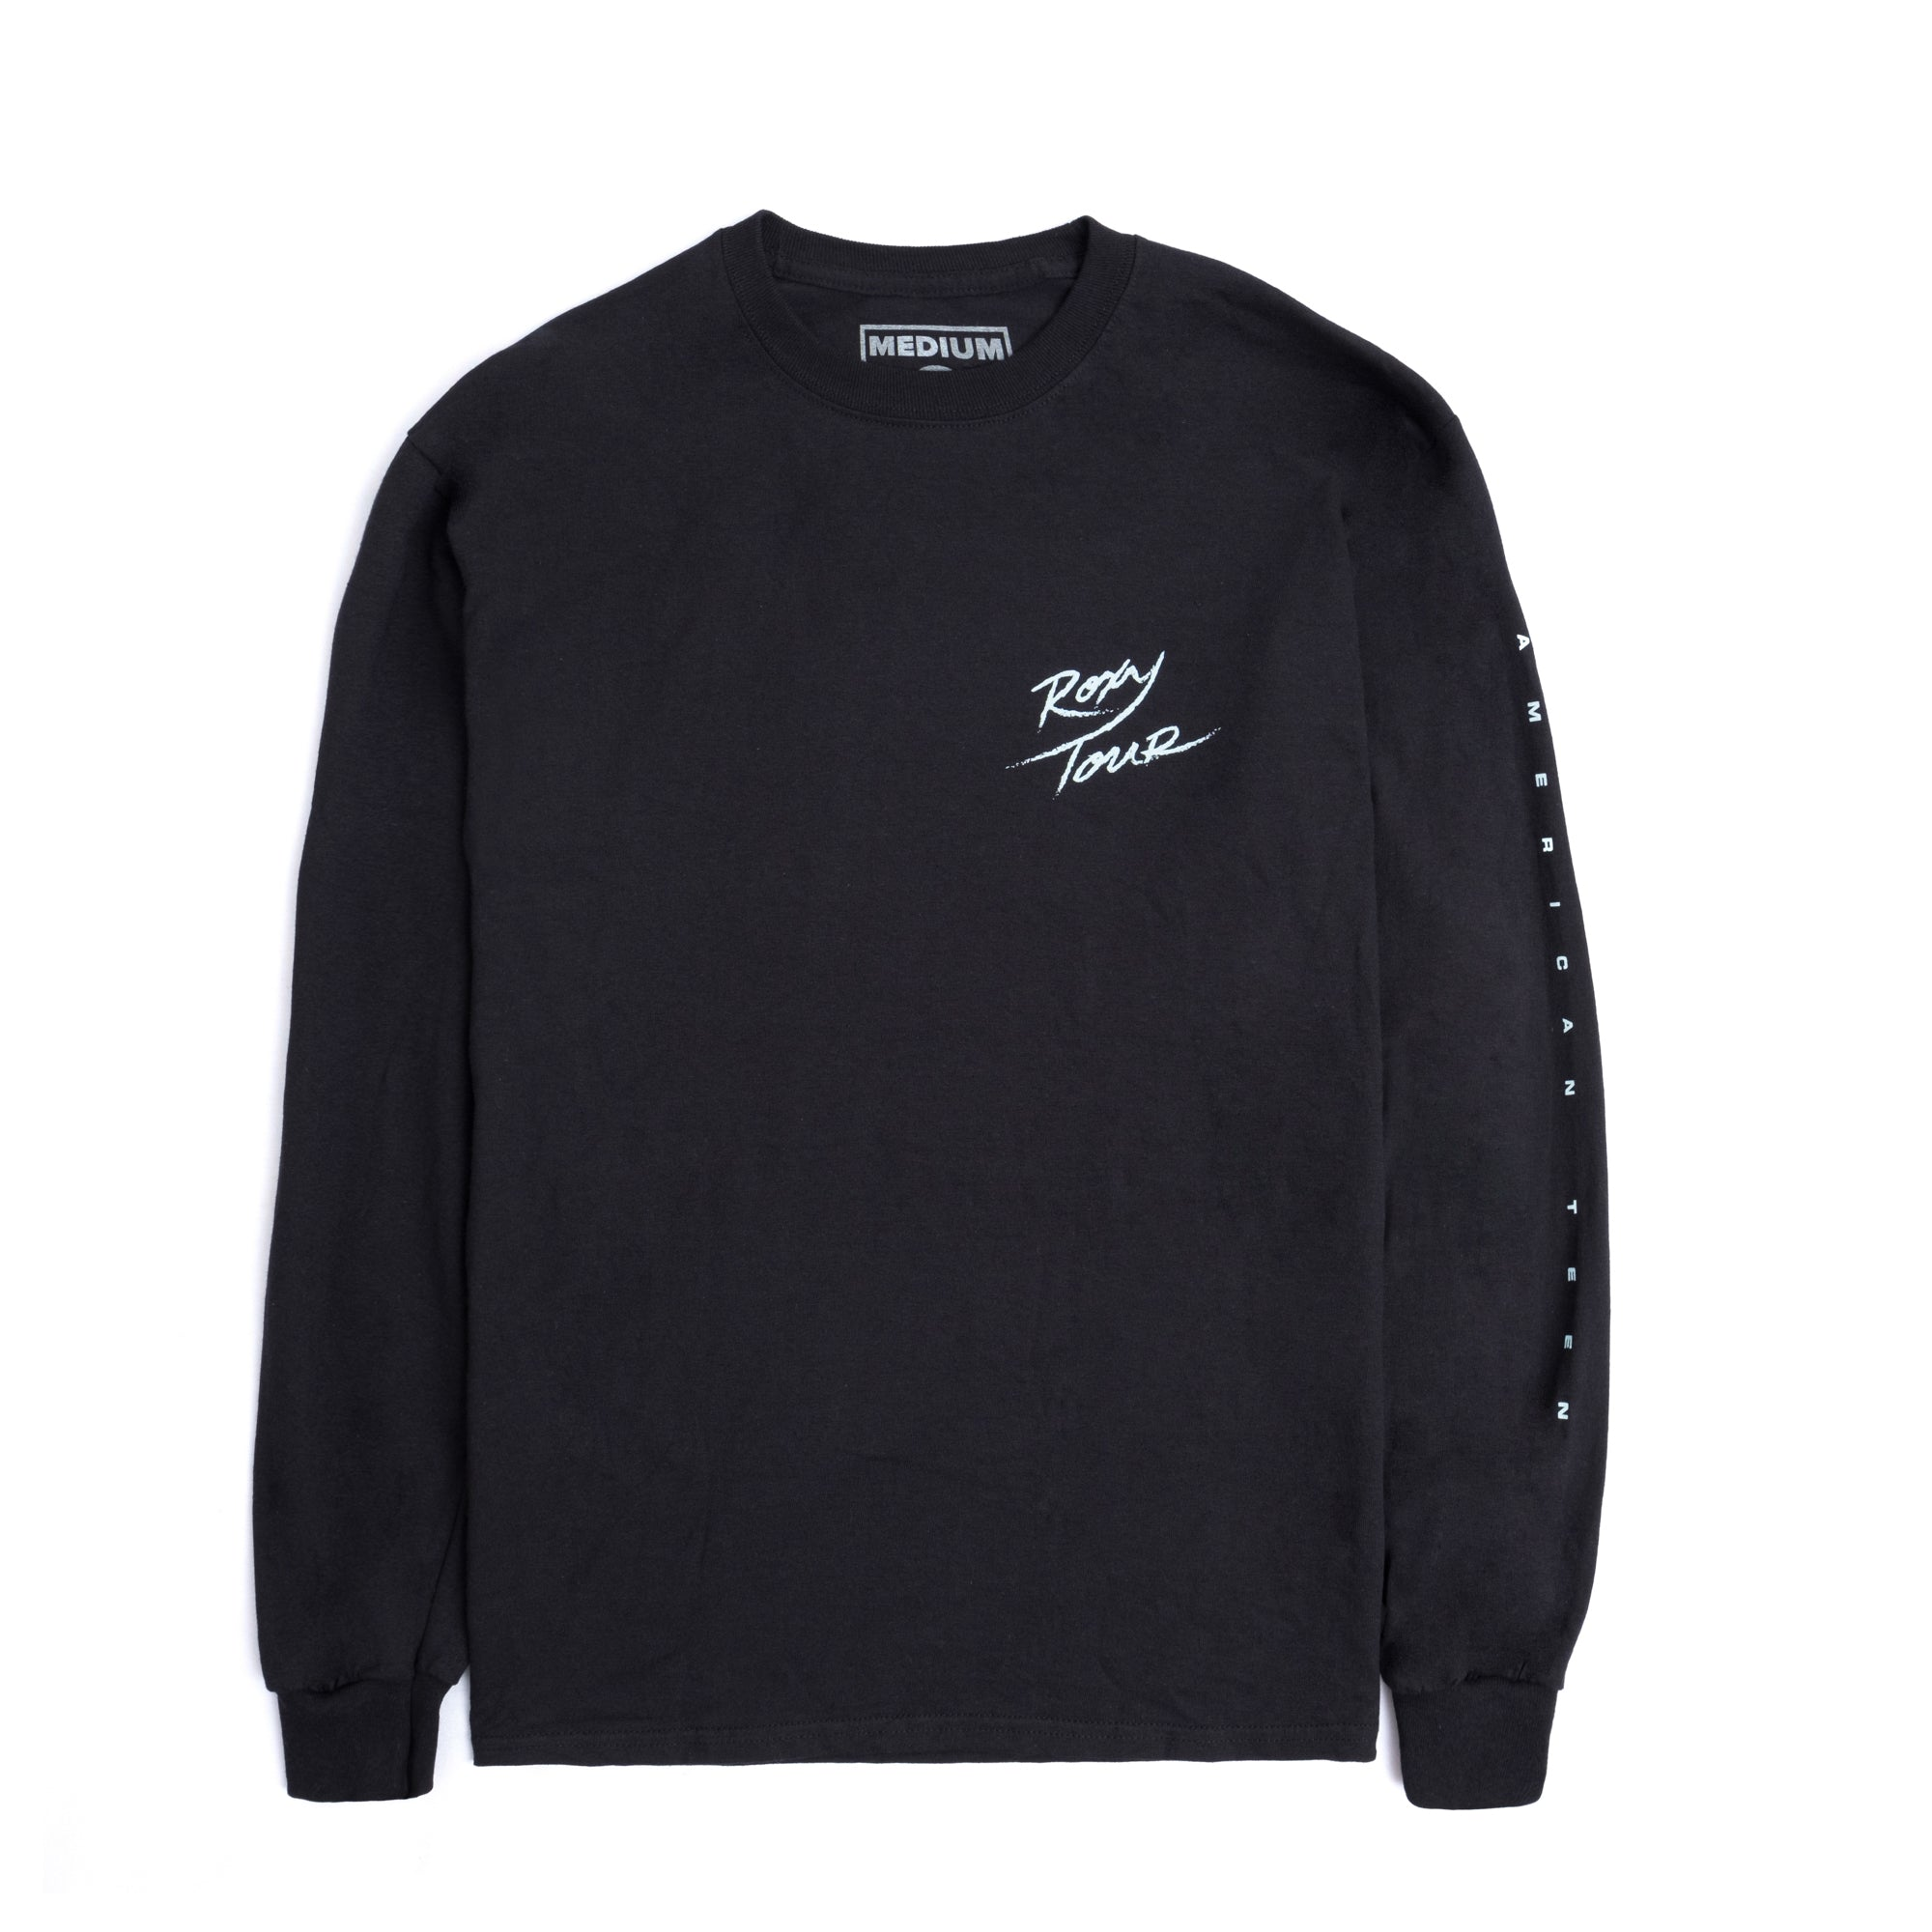 'Roxy Tour' Long Sleeve Tee